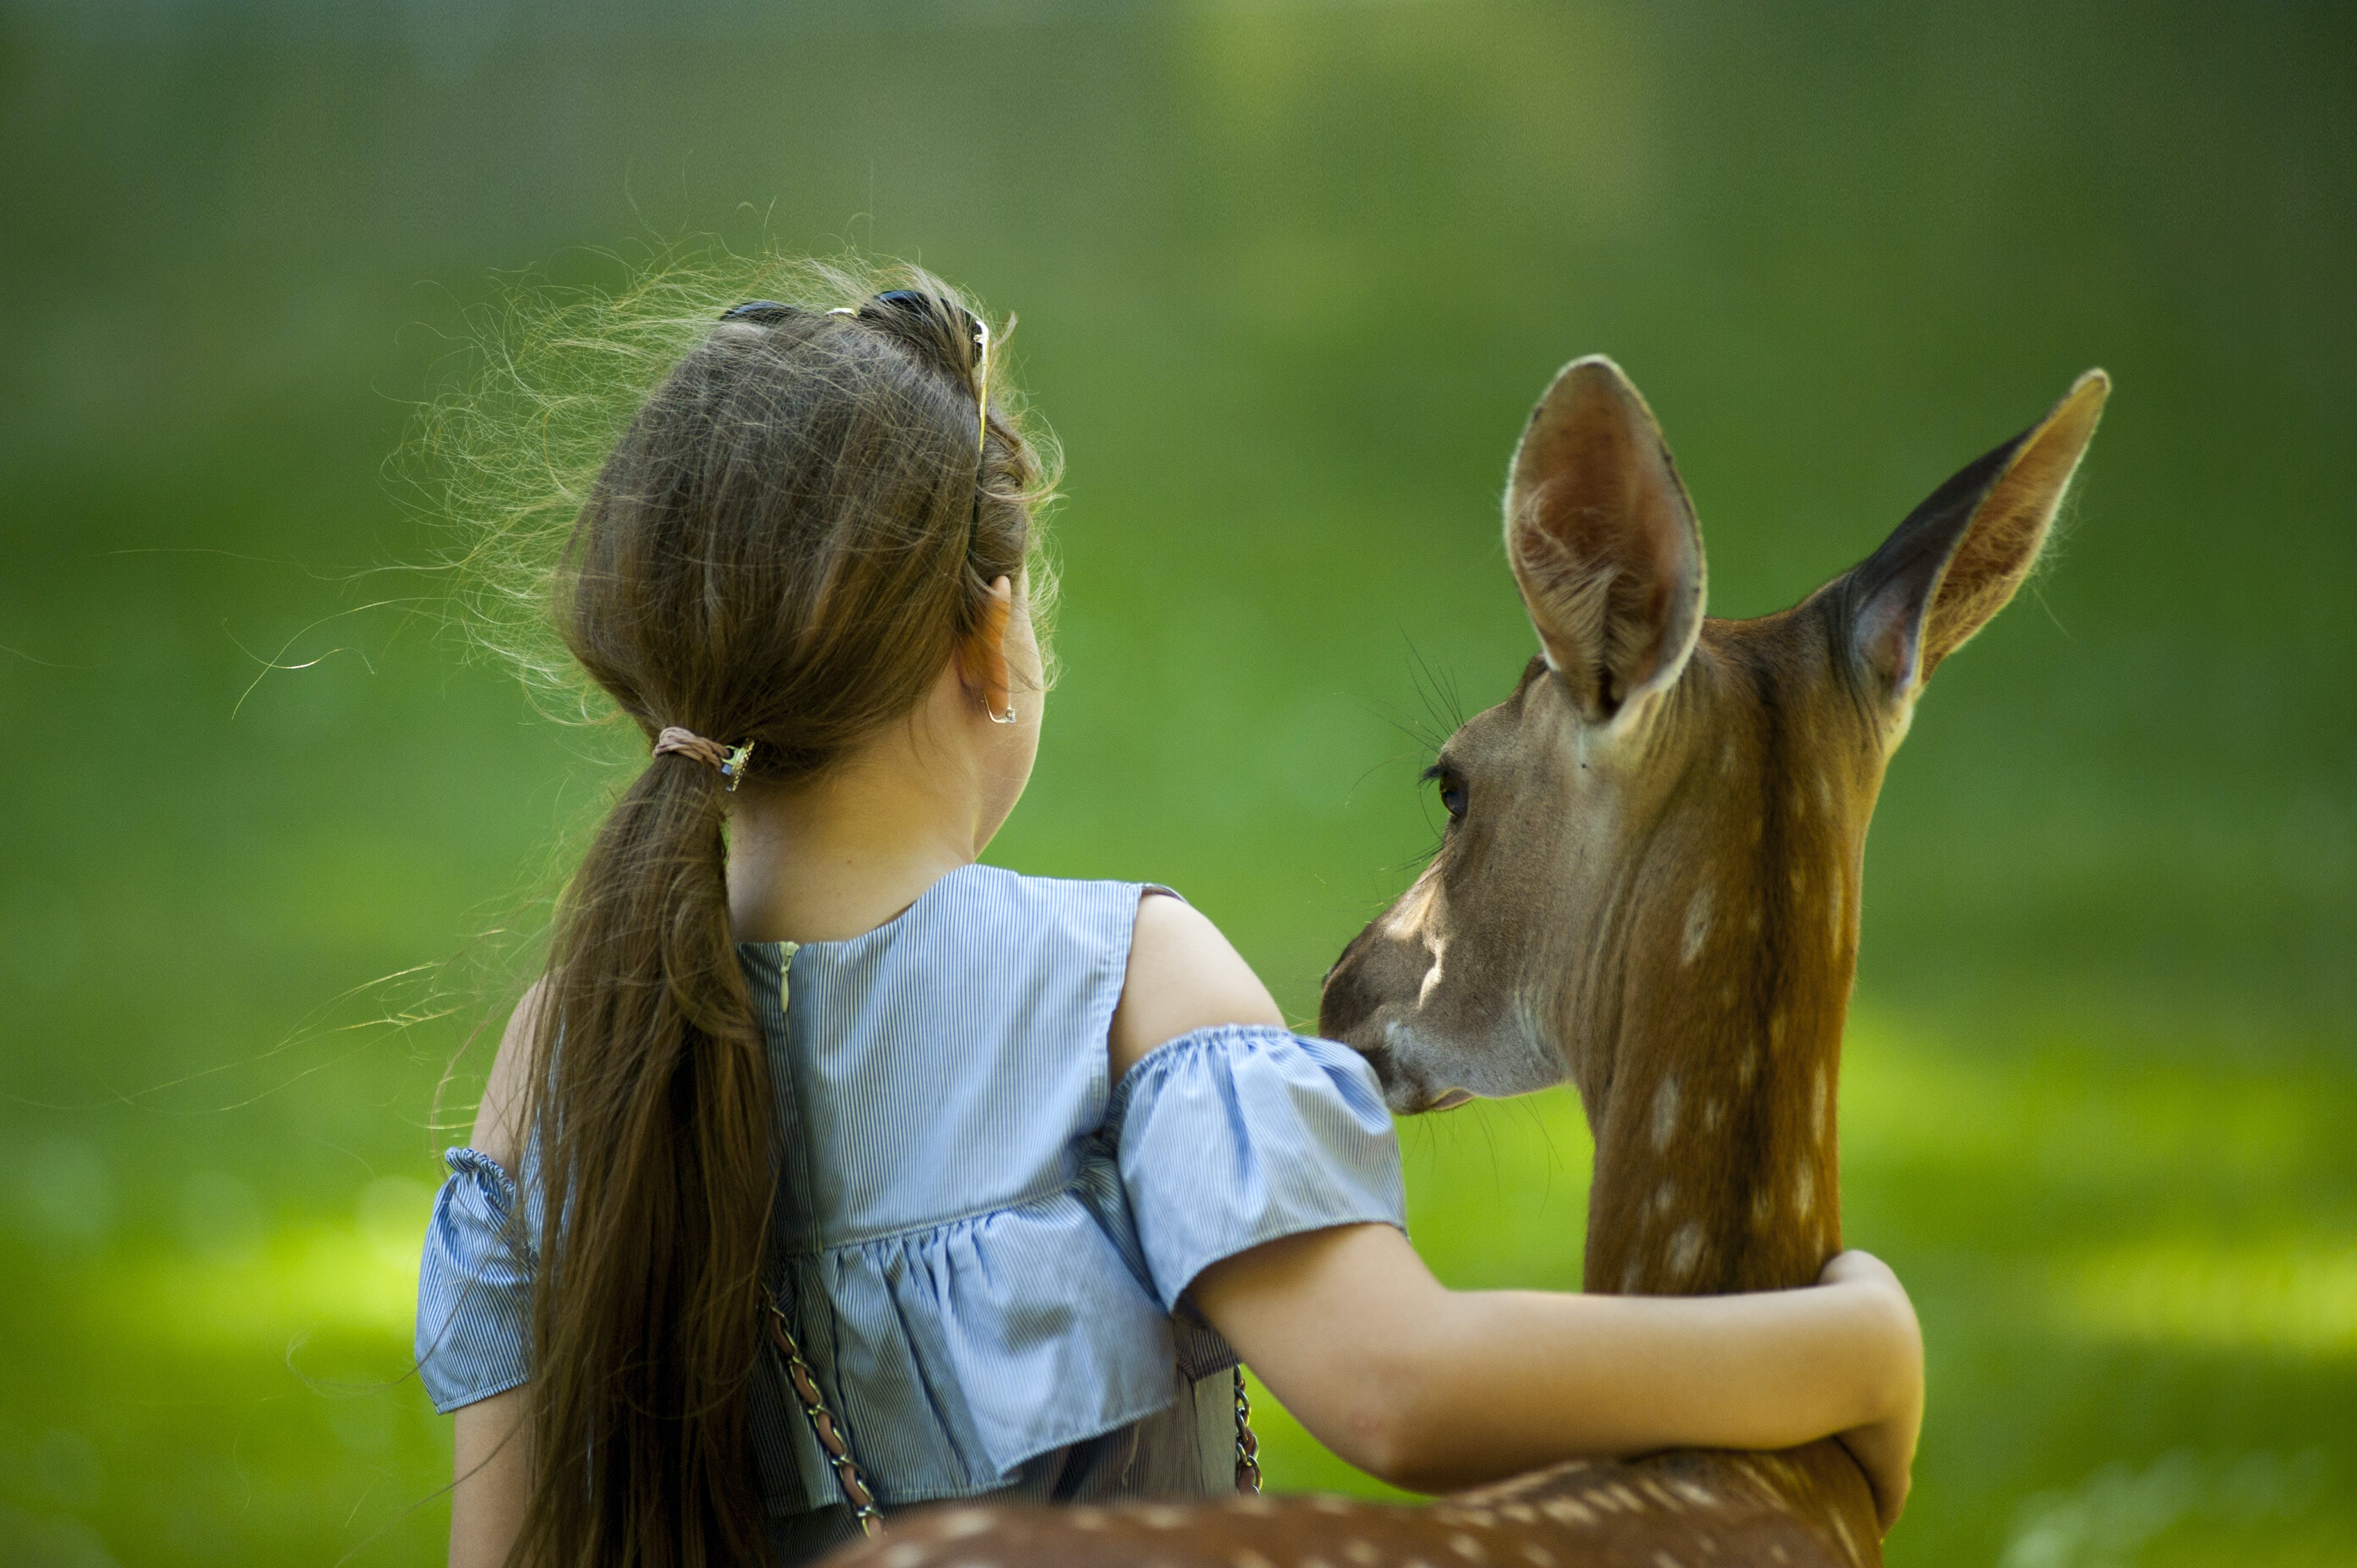 Girl Wearing Blue Top With her hand around a deer